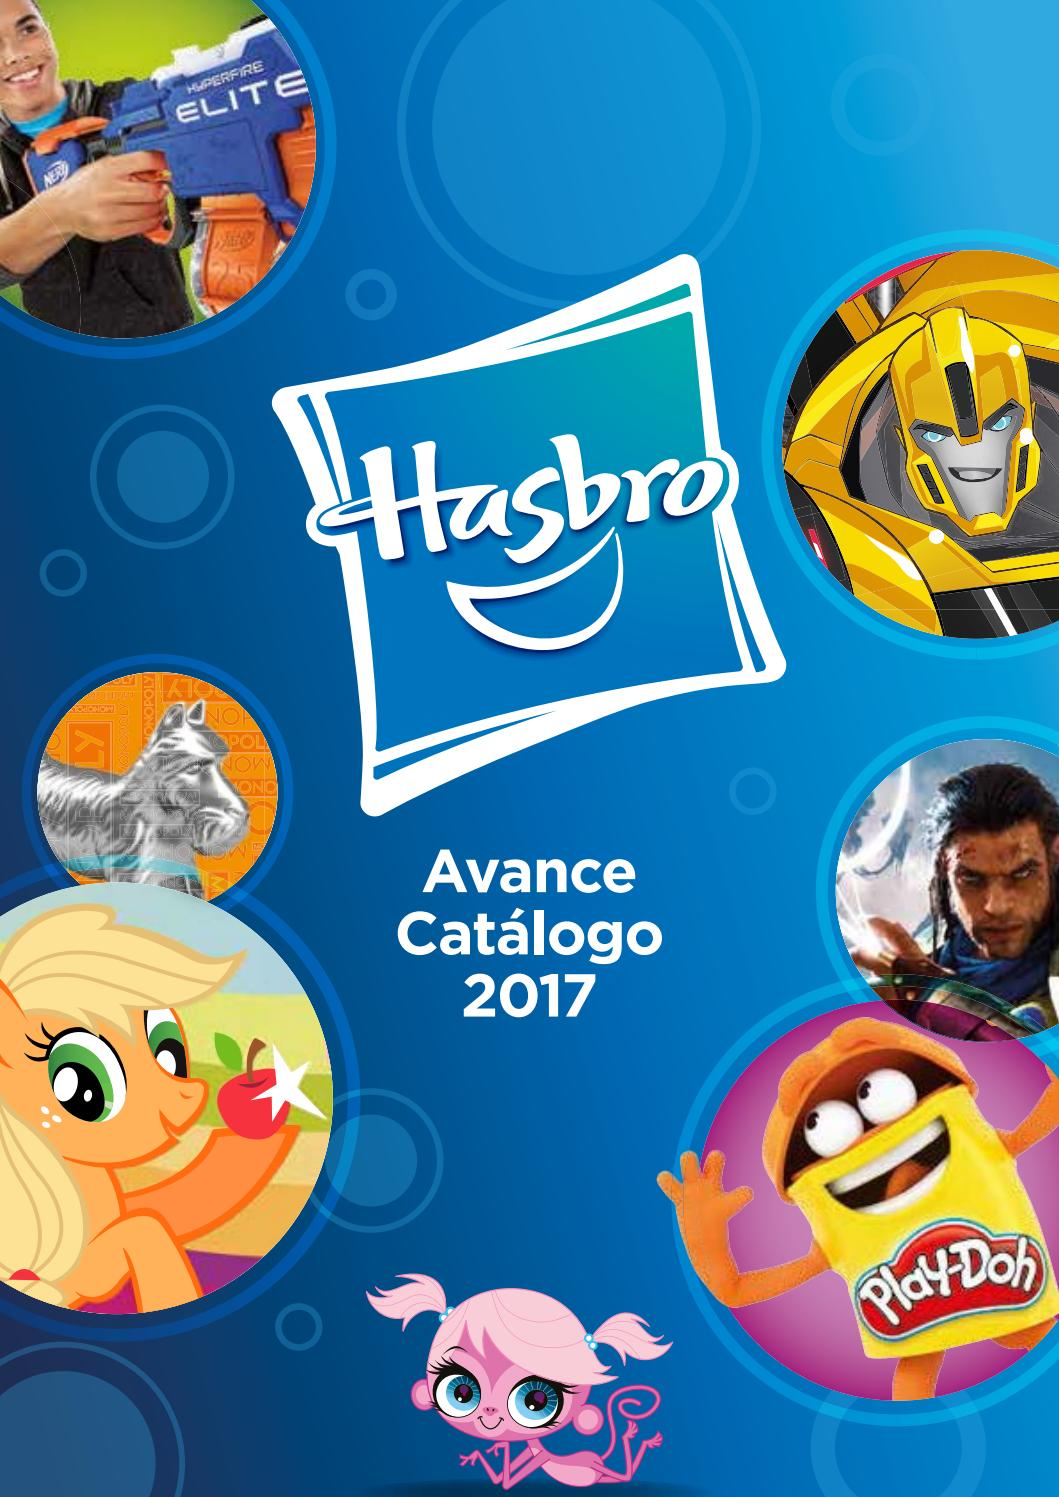 Hb Hasbro Cat 2017 By Sr Brinquedo Issuu